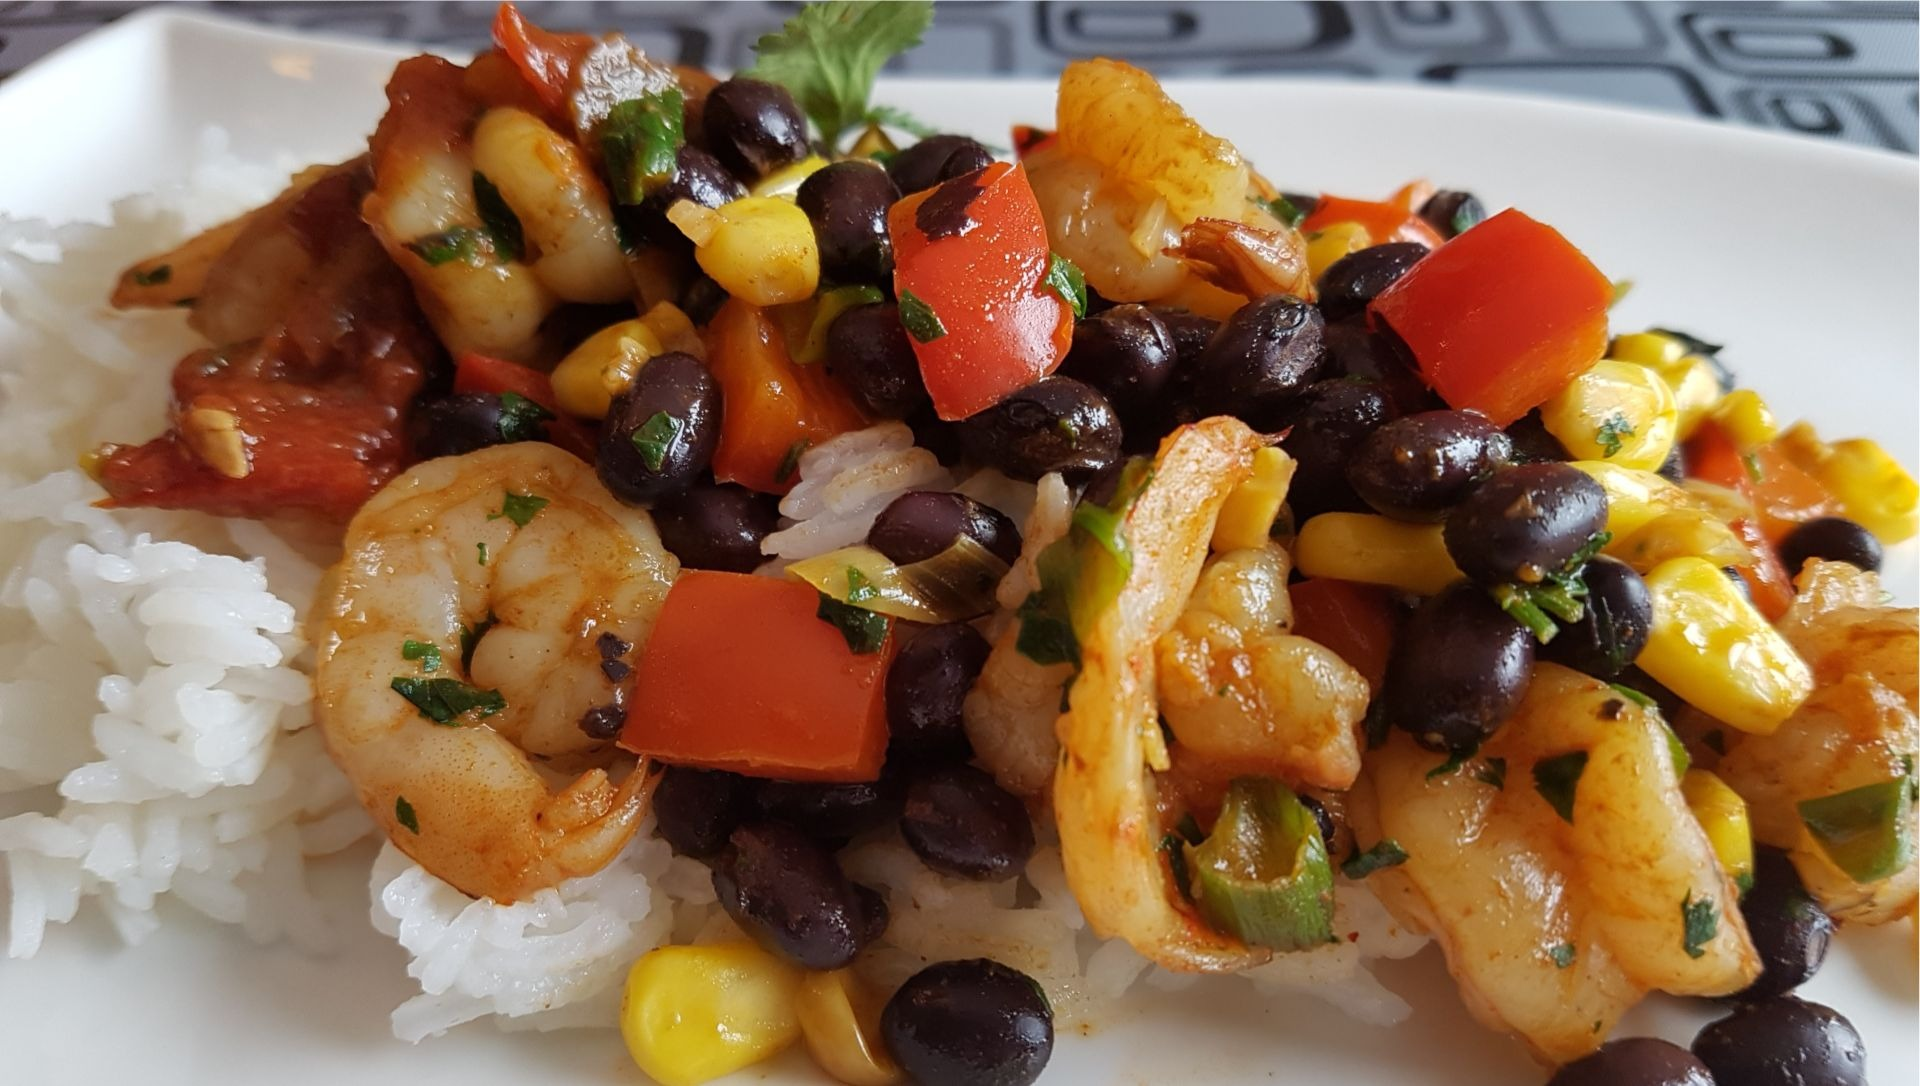 Shrimp, red peppers, black beans, corn, white rice on plate